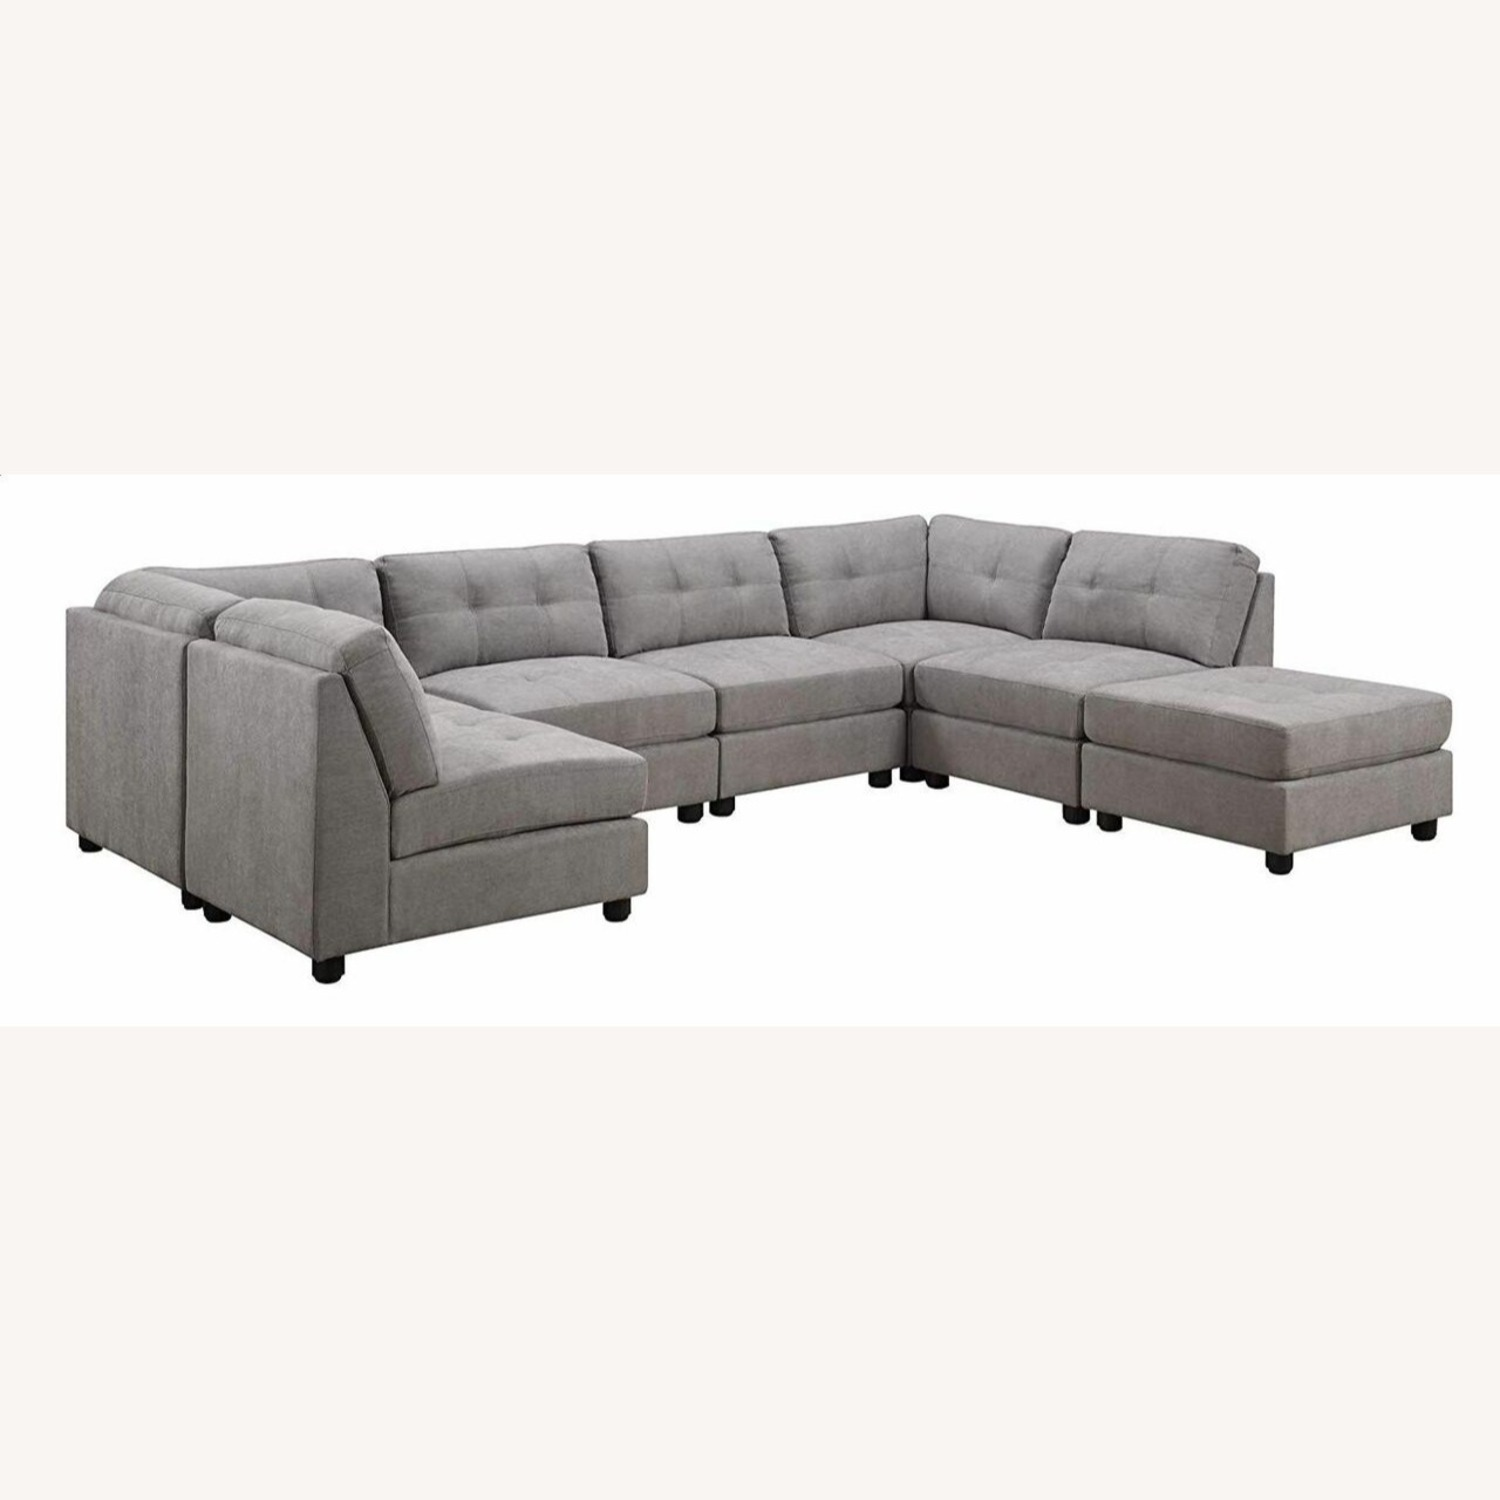 7-Piece Sectional In Dove Chenille Fabric - image-0